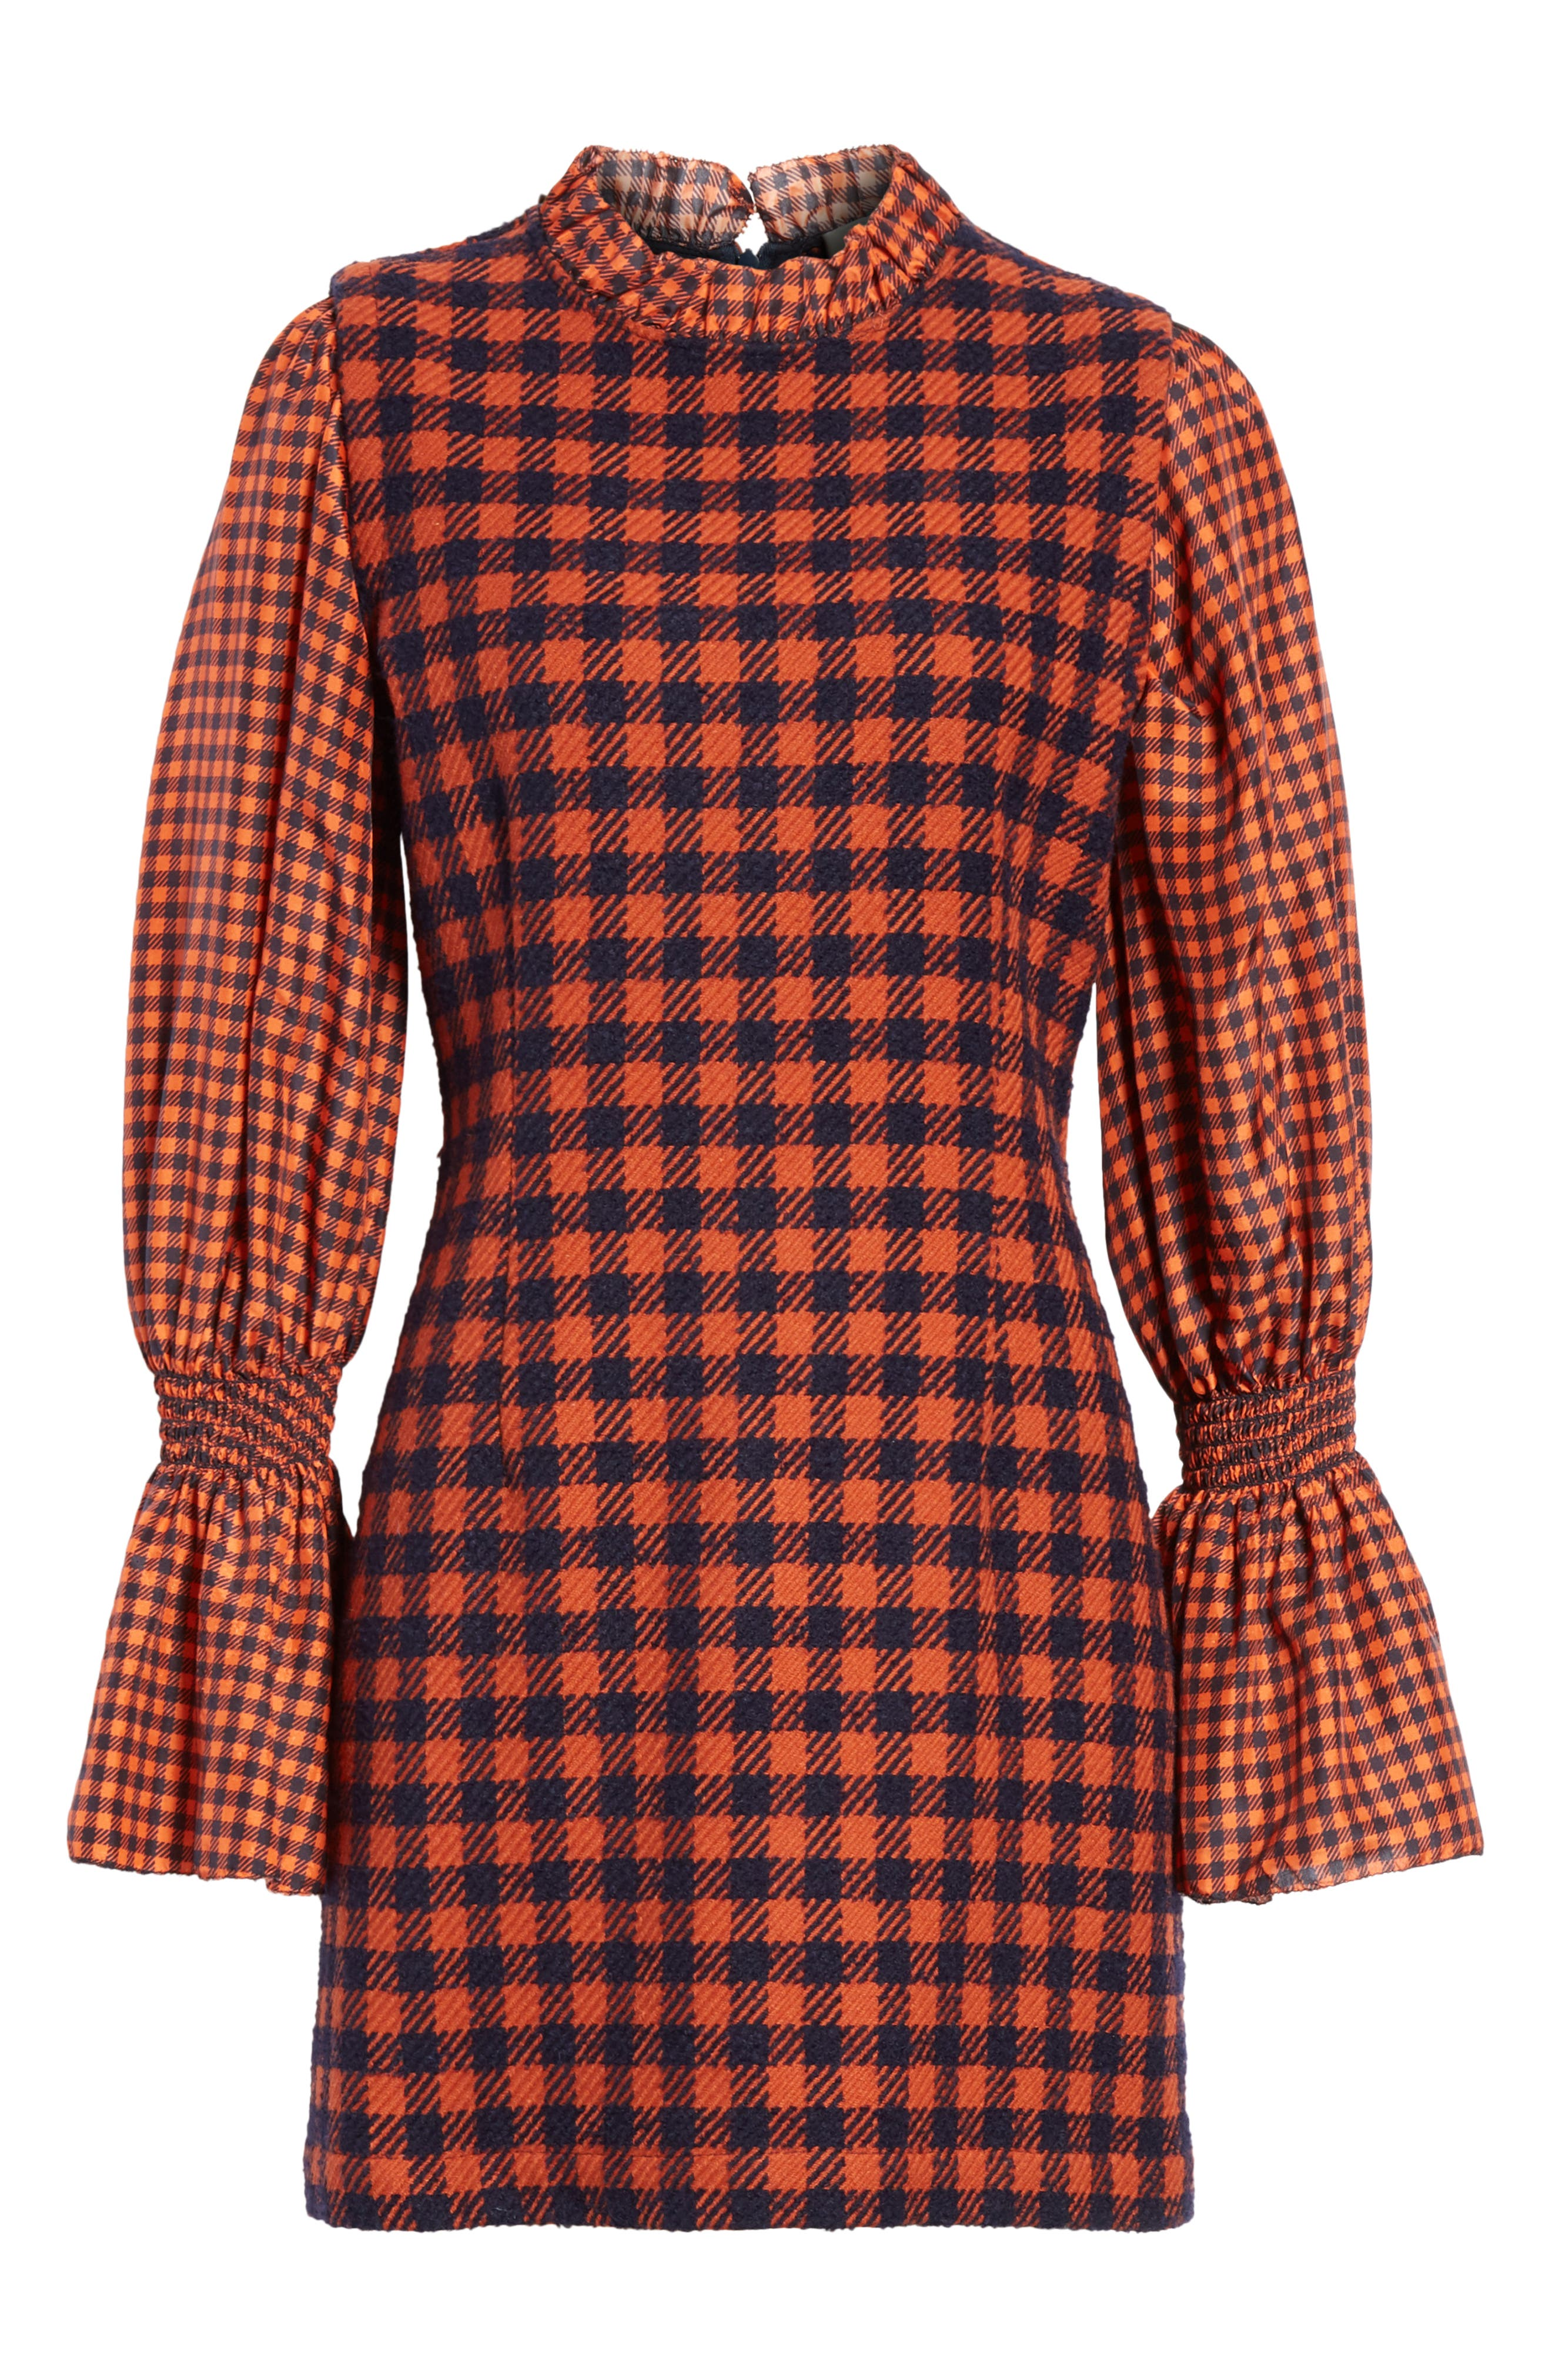 Ethno Pop Checkered Combo Dress,                             Alternate thumbnail 6, color,                             800